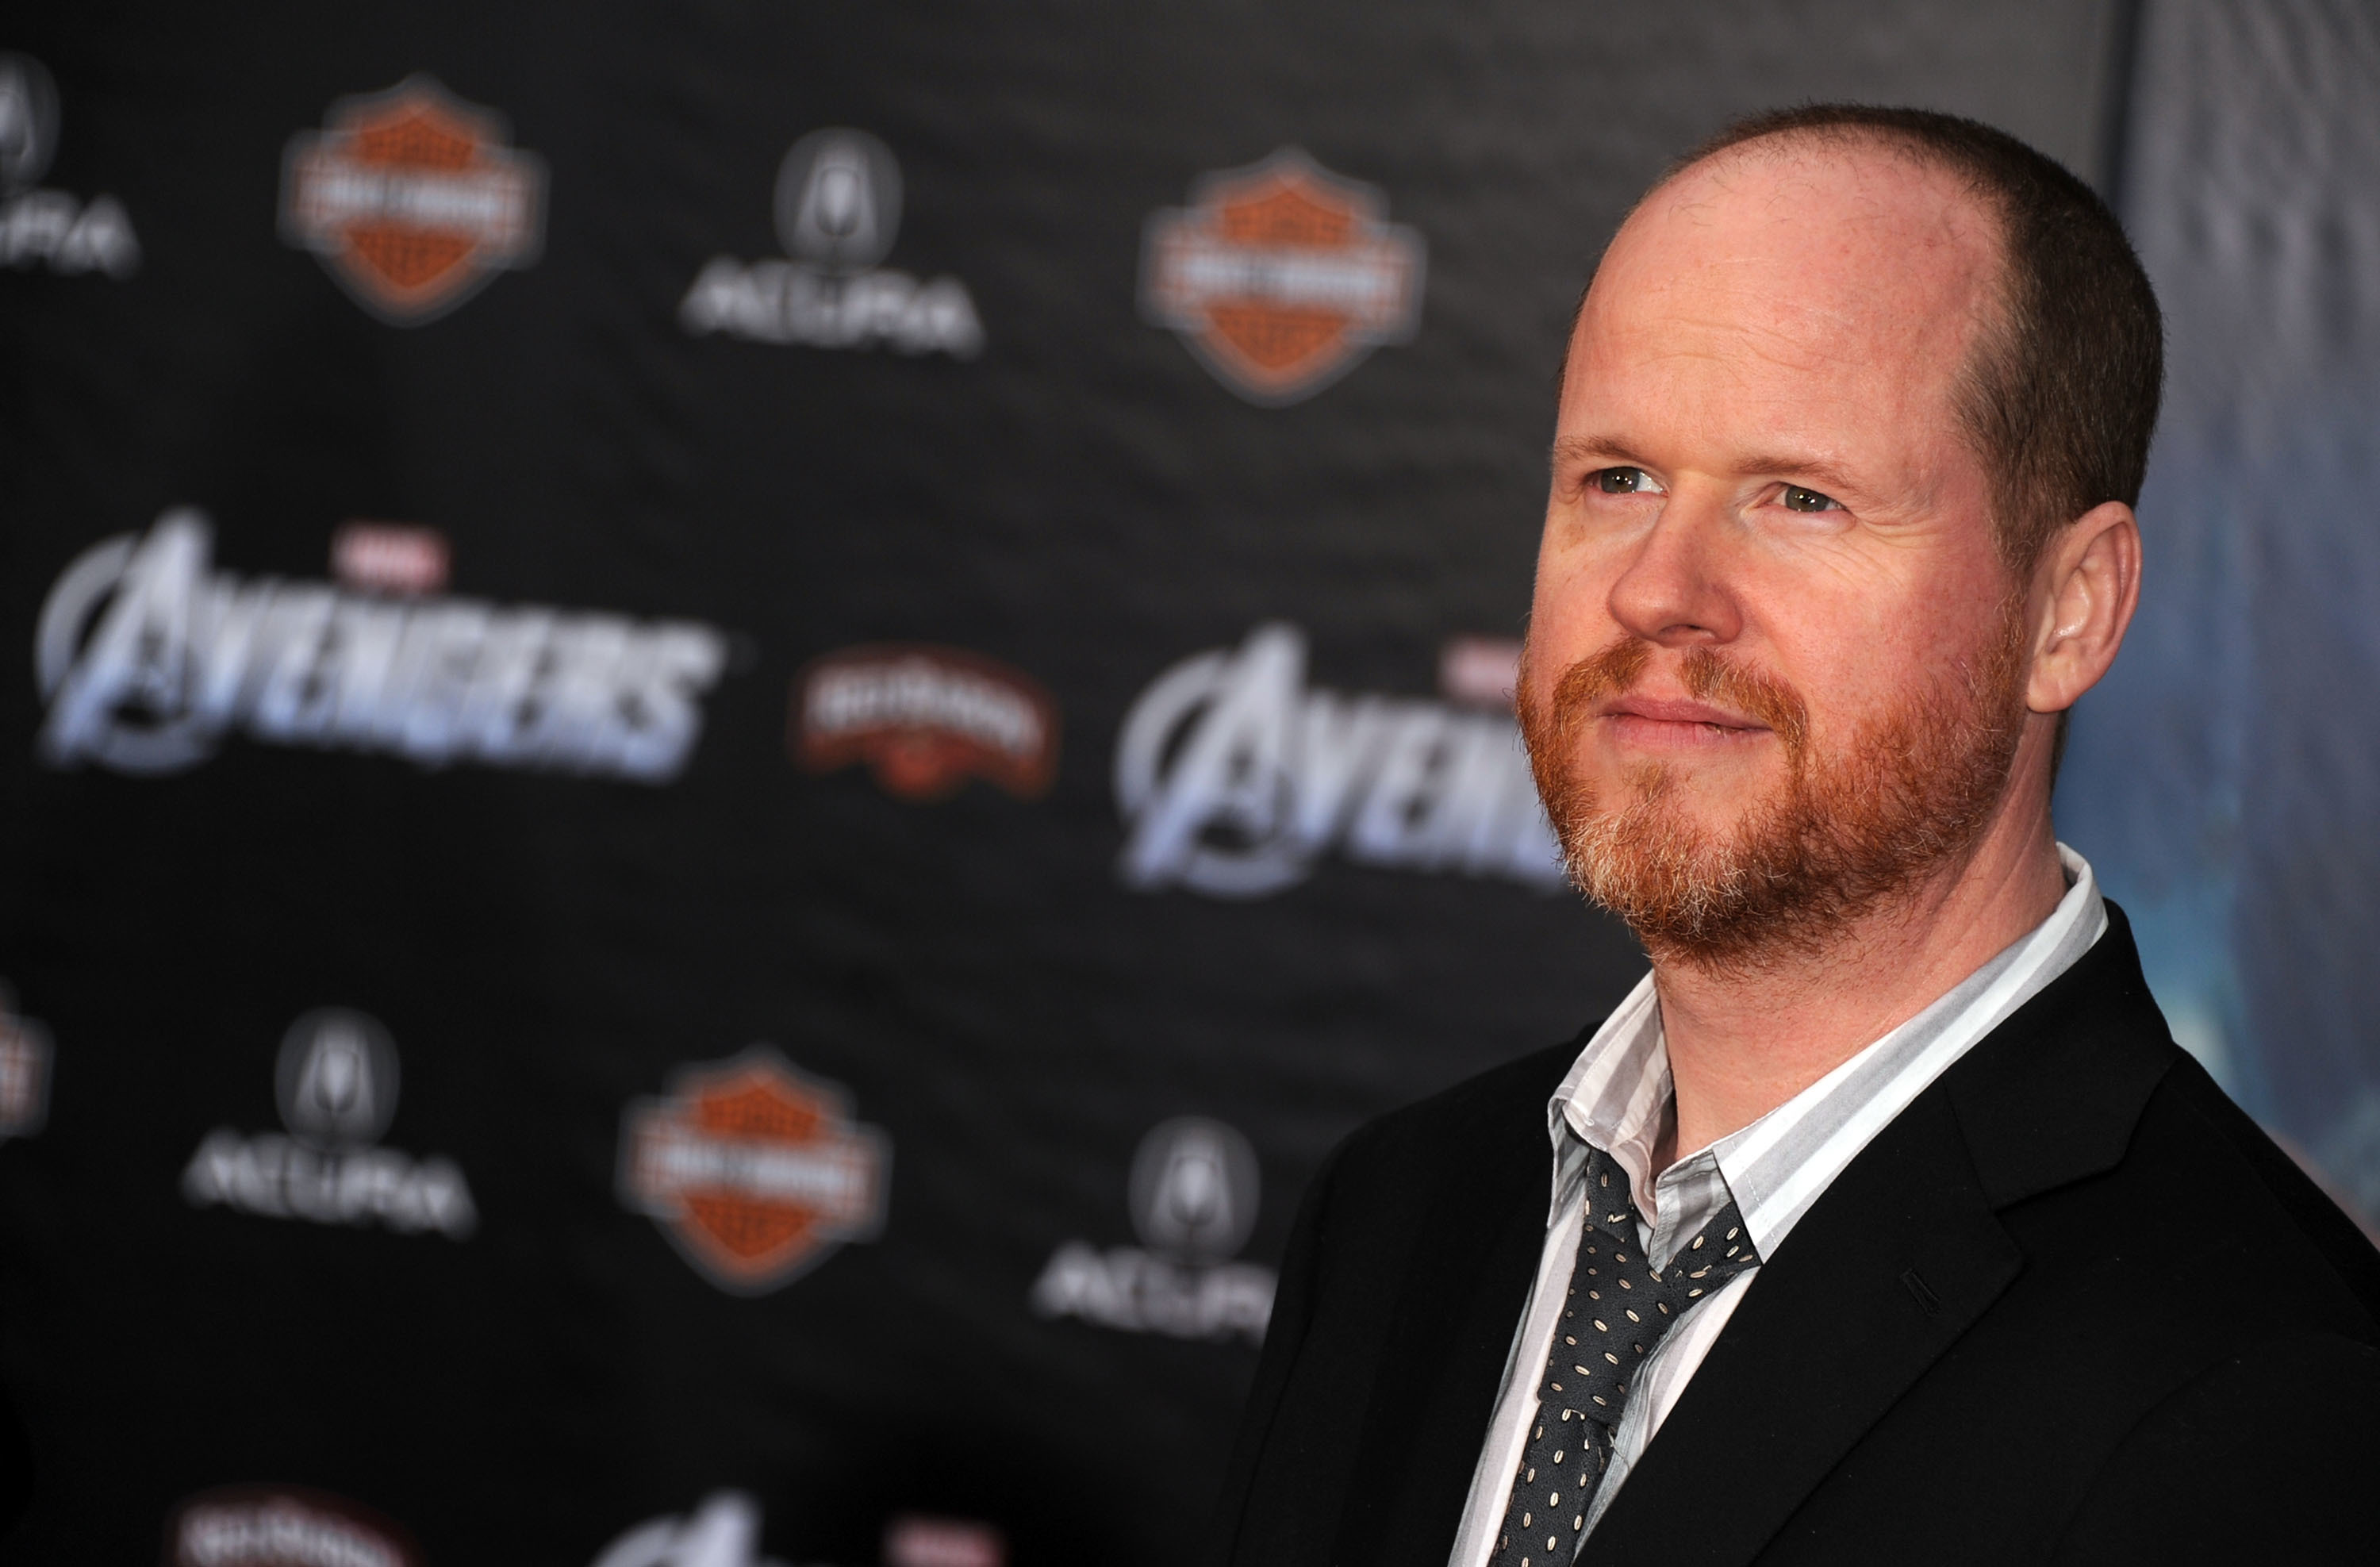 Josh Whedon In Talks To Write & Direct Batgirl Film